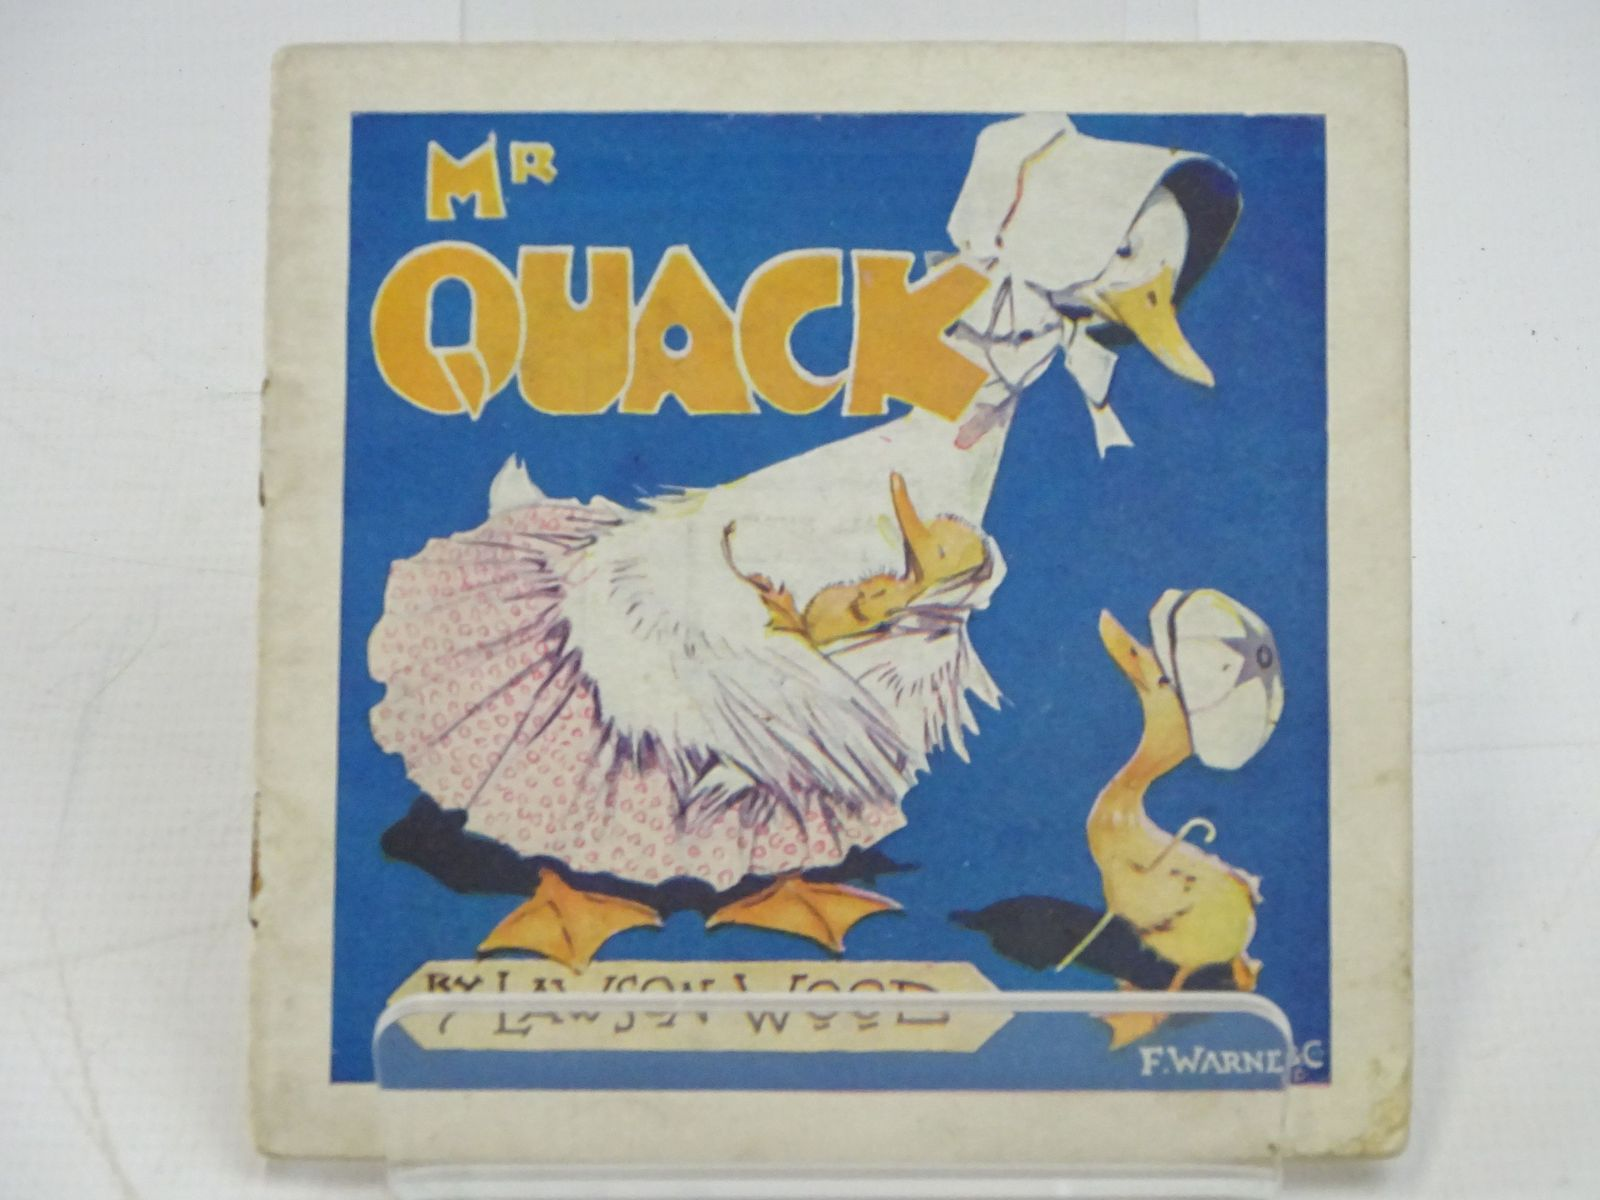 Photo of MR QUACK - HIS VOYAGE TO LONDON written by Wood, Lawson illustrated by Wood, Lawson published by F. Warne & Co. (STOCK CODE: 1318034)  for sale by Stella & Rose's Books